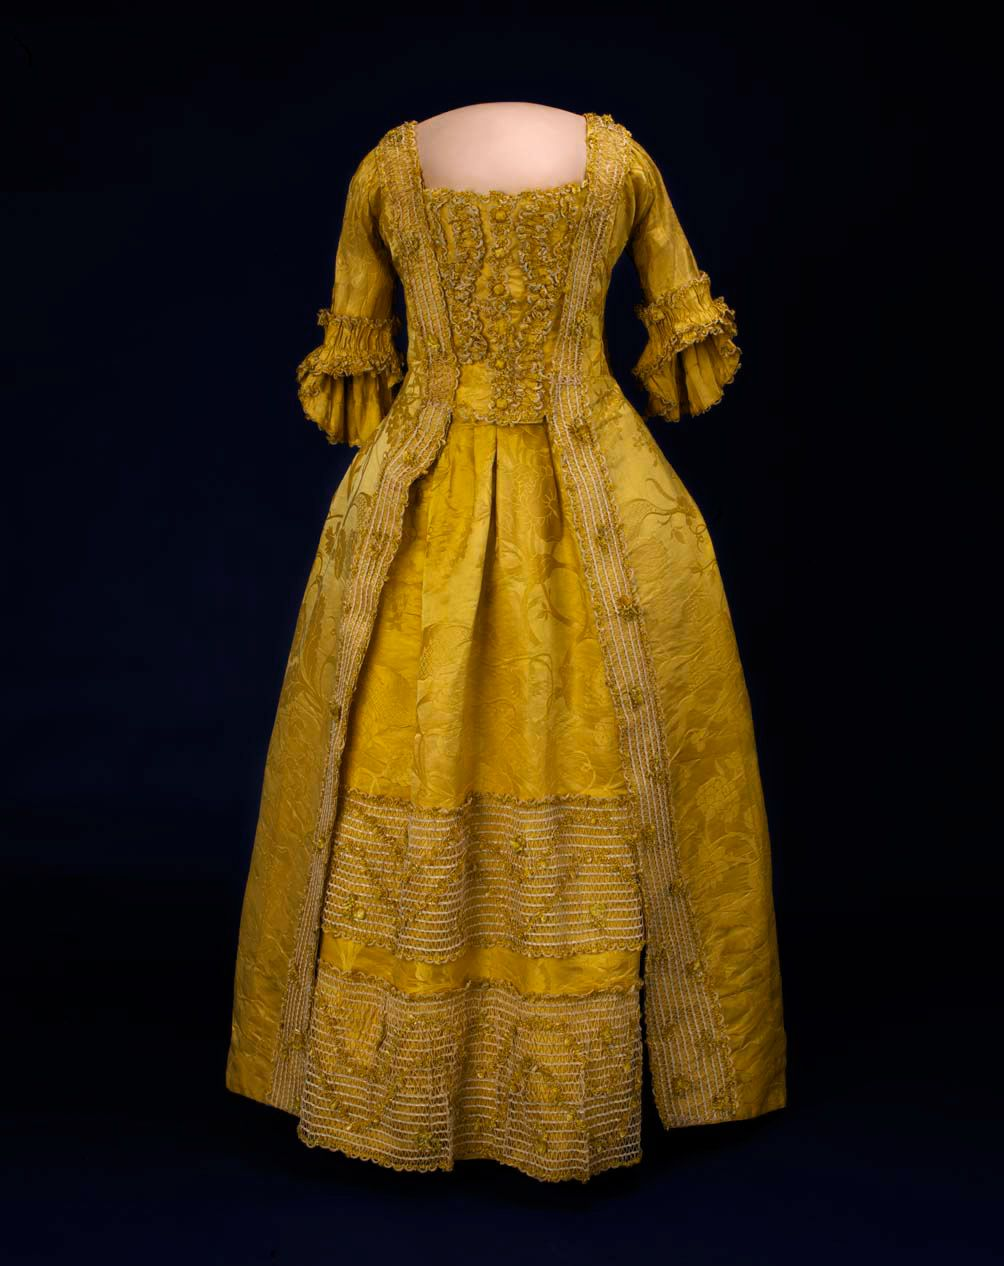 228e95d93a Eliza Pinckney s dress (1750-1780) made in England from silk she cultivated  in South Carolina